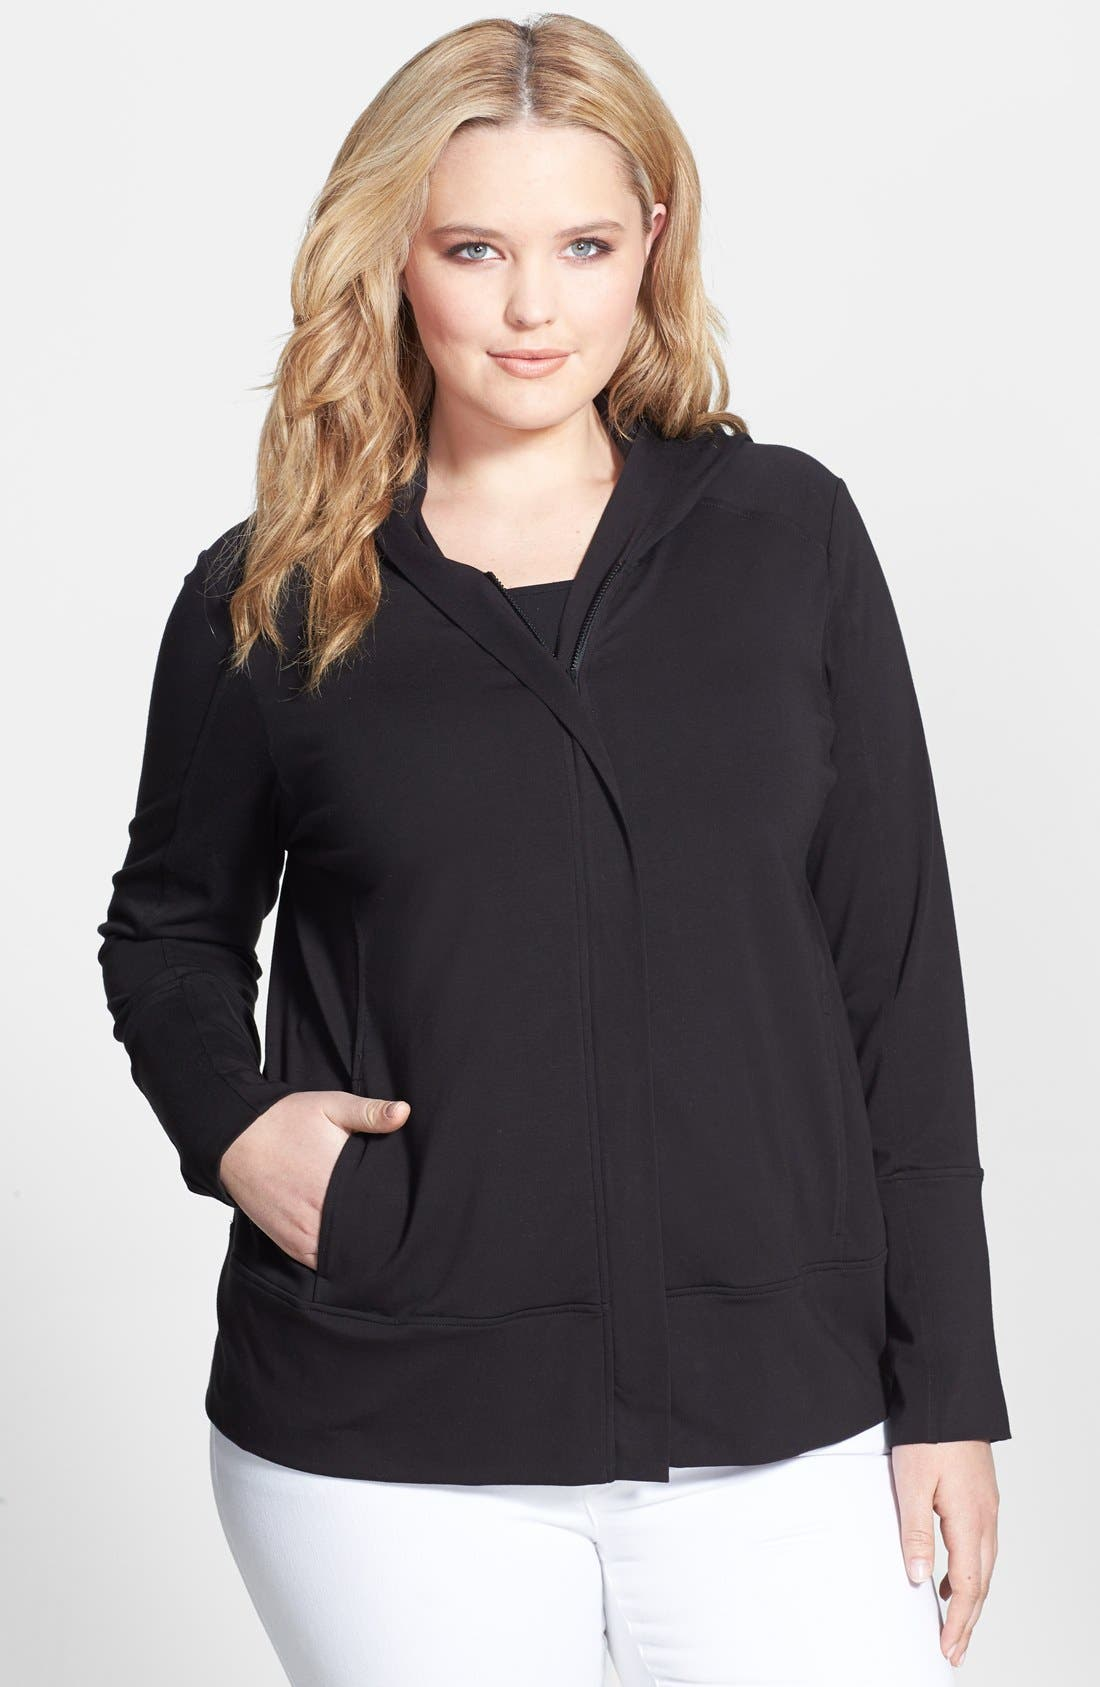 Alternate Image 1 Selected - Eileen Fisher Organic Cotton Blend Jacket (Plus Size)